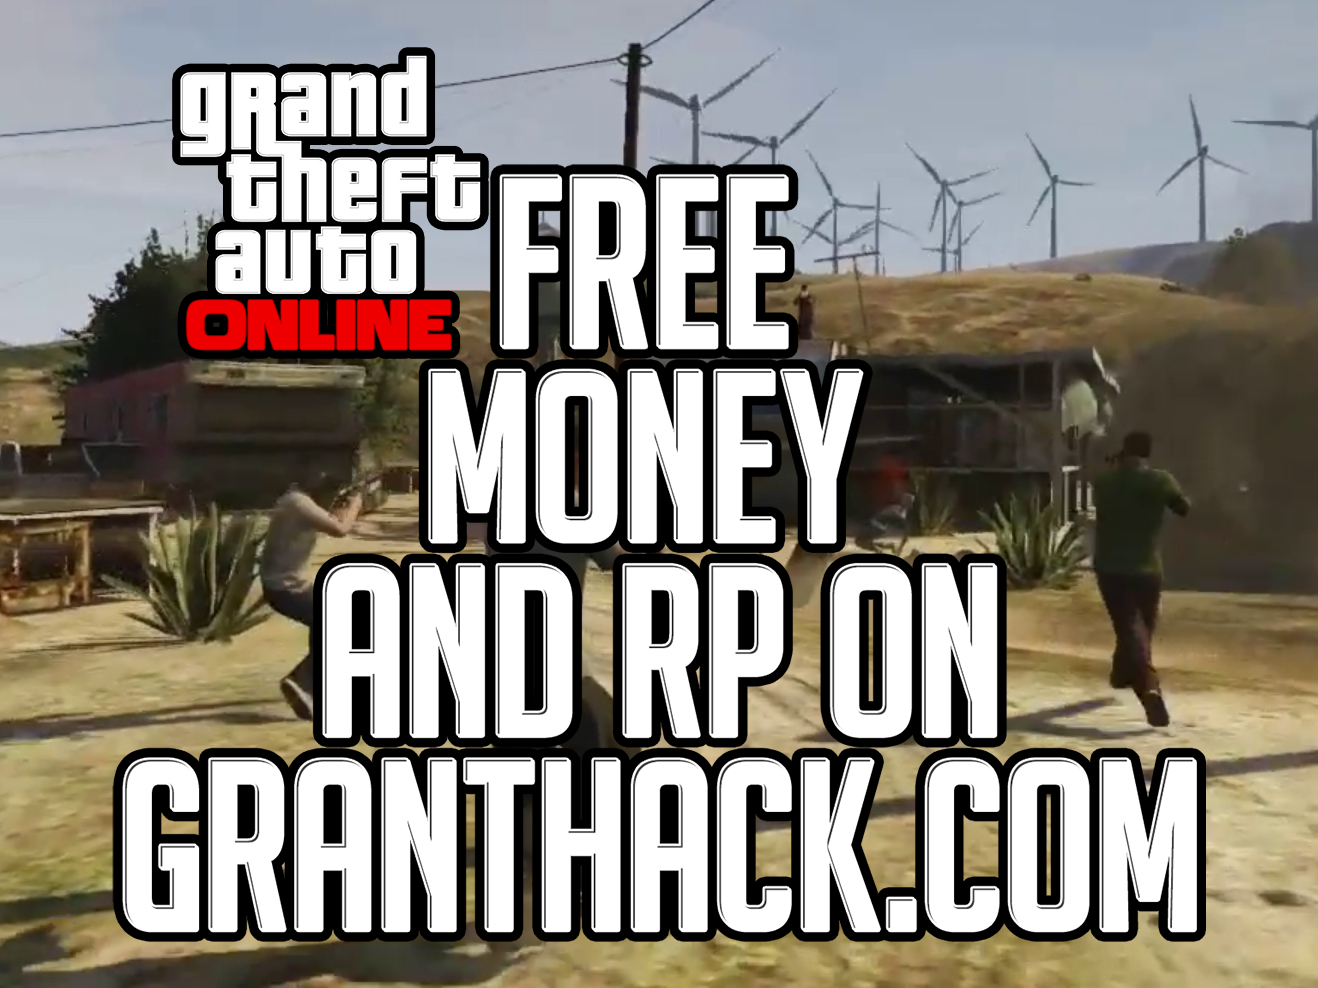 Image currently unavailable. Go to www.generator.granthack.com and choose Grand Theft Auto Online image, you will be redirect to Grand Theft Auto Online Generator site.